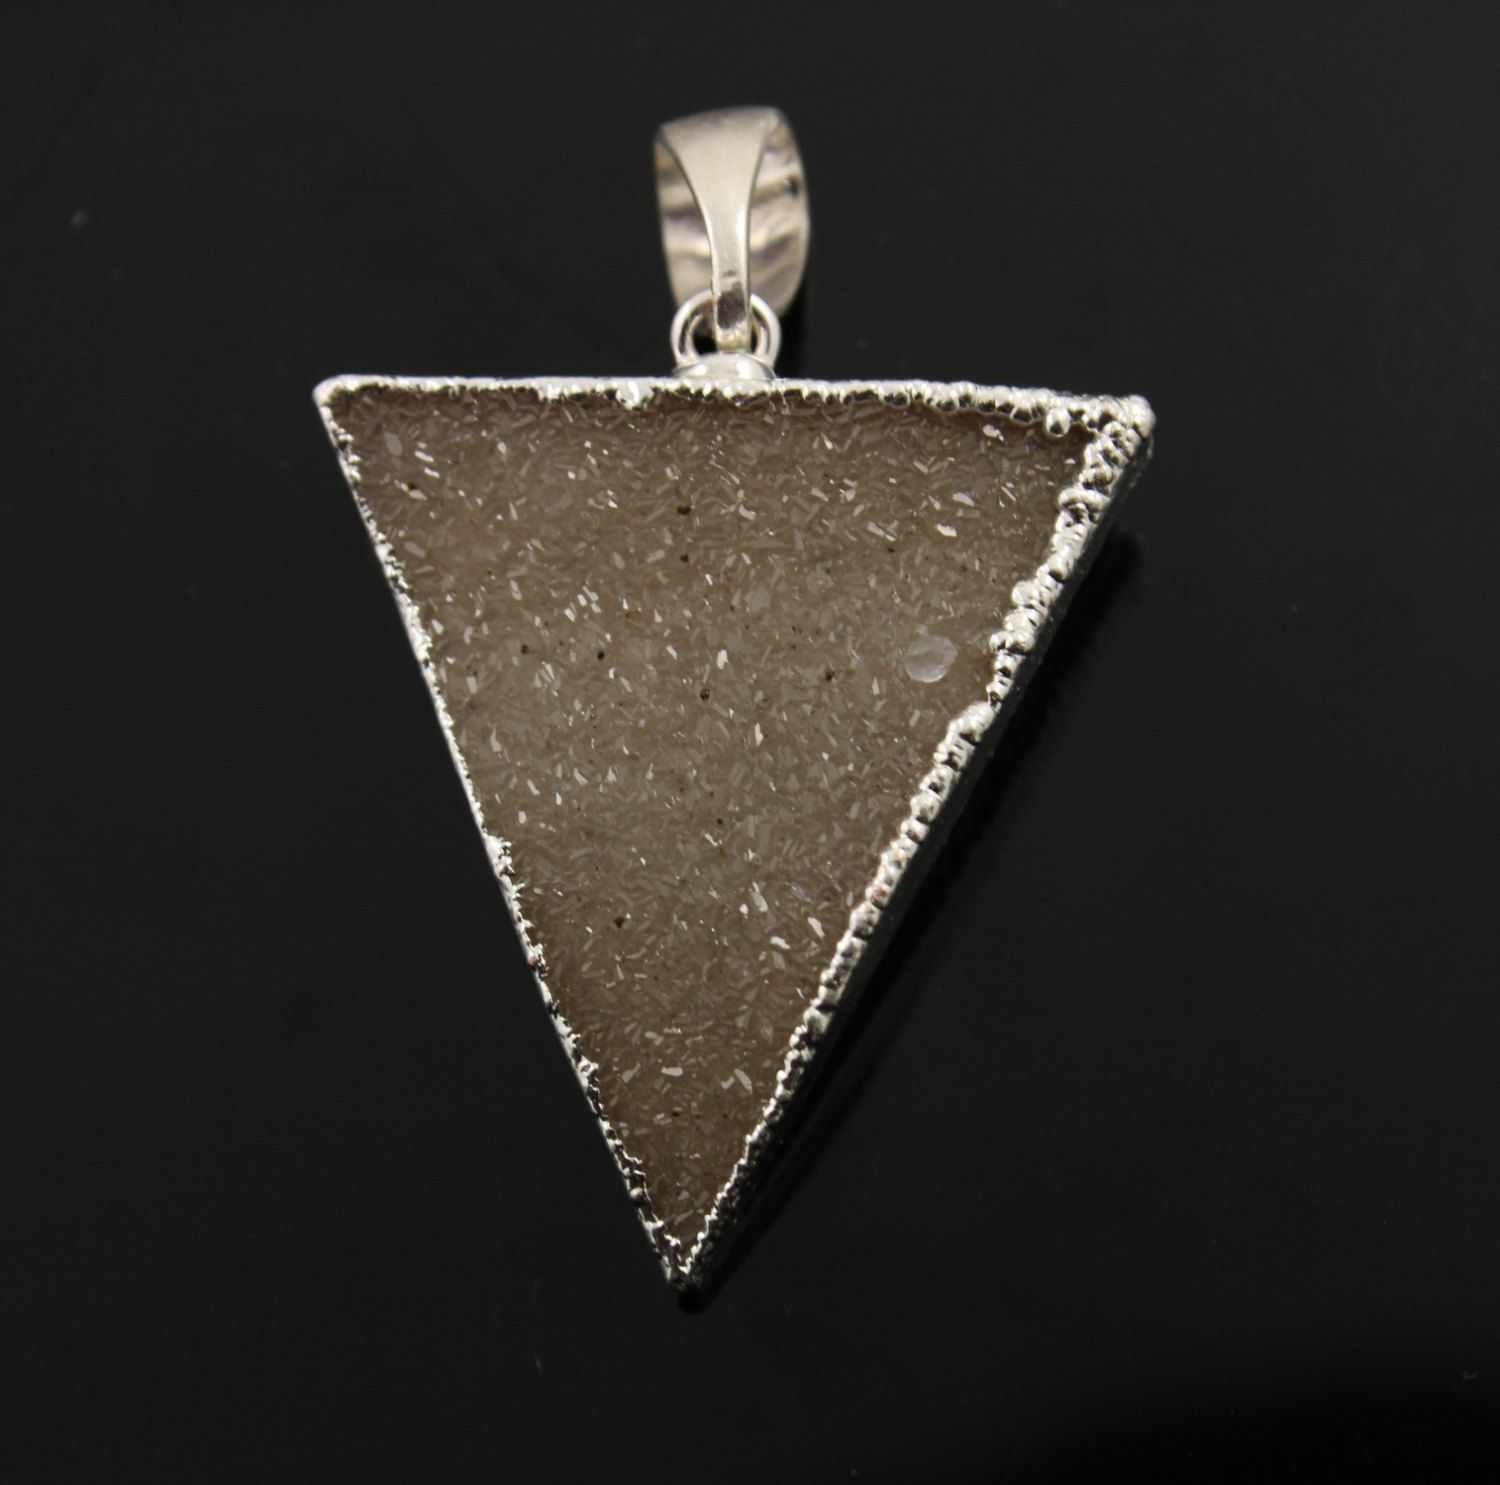 Dazzling Druzy Triangle Pendant in Stunning Earth Tones, Silver Plated, 30x33mm, A+ Gorgeous Quality, Electroplated Edge (SS-DZY/TRI/128) by Beadspoint on Etsy